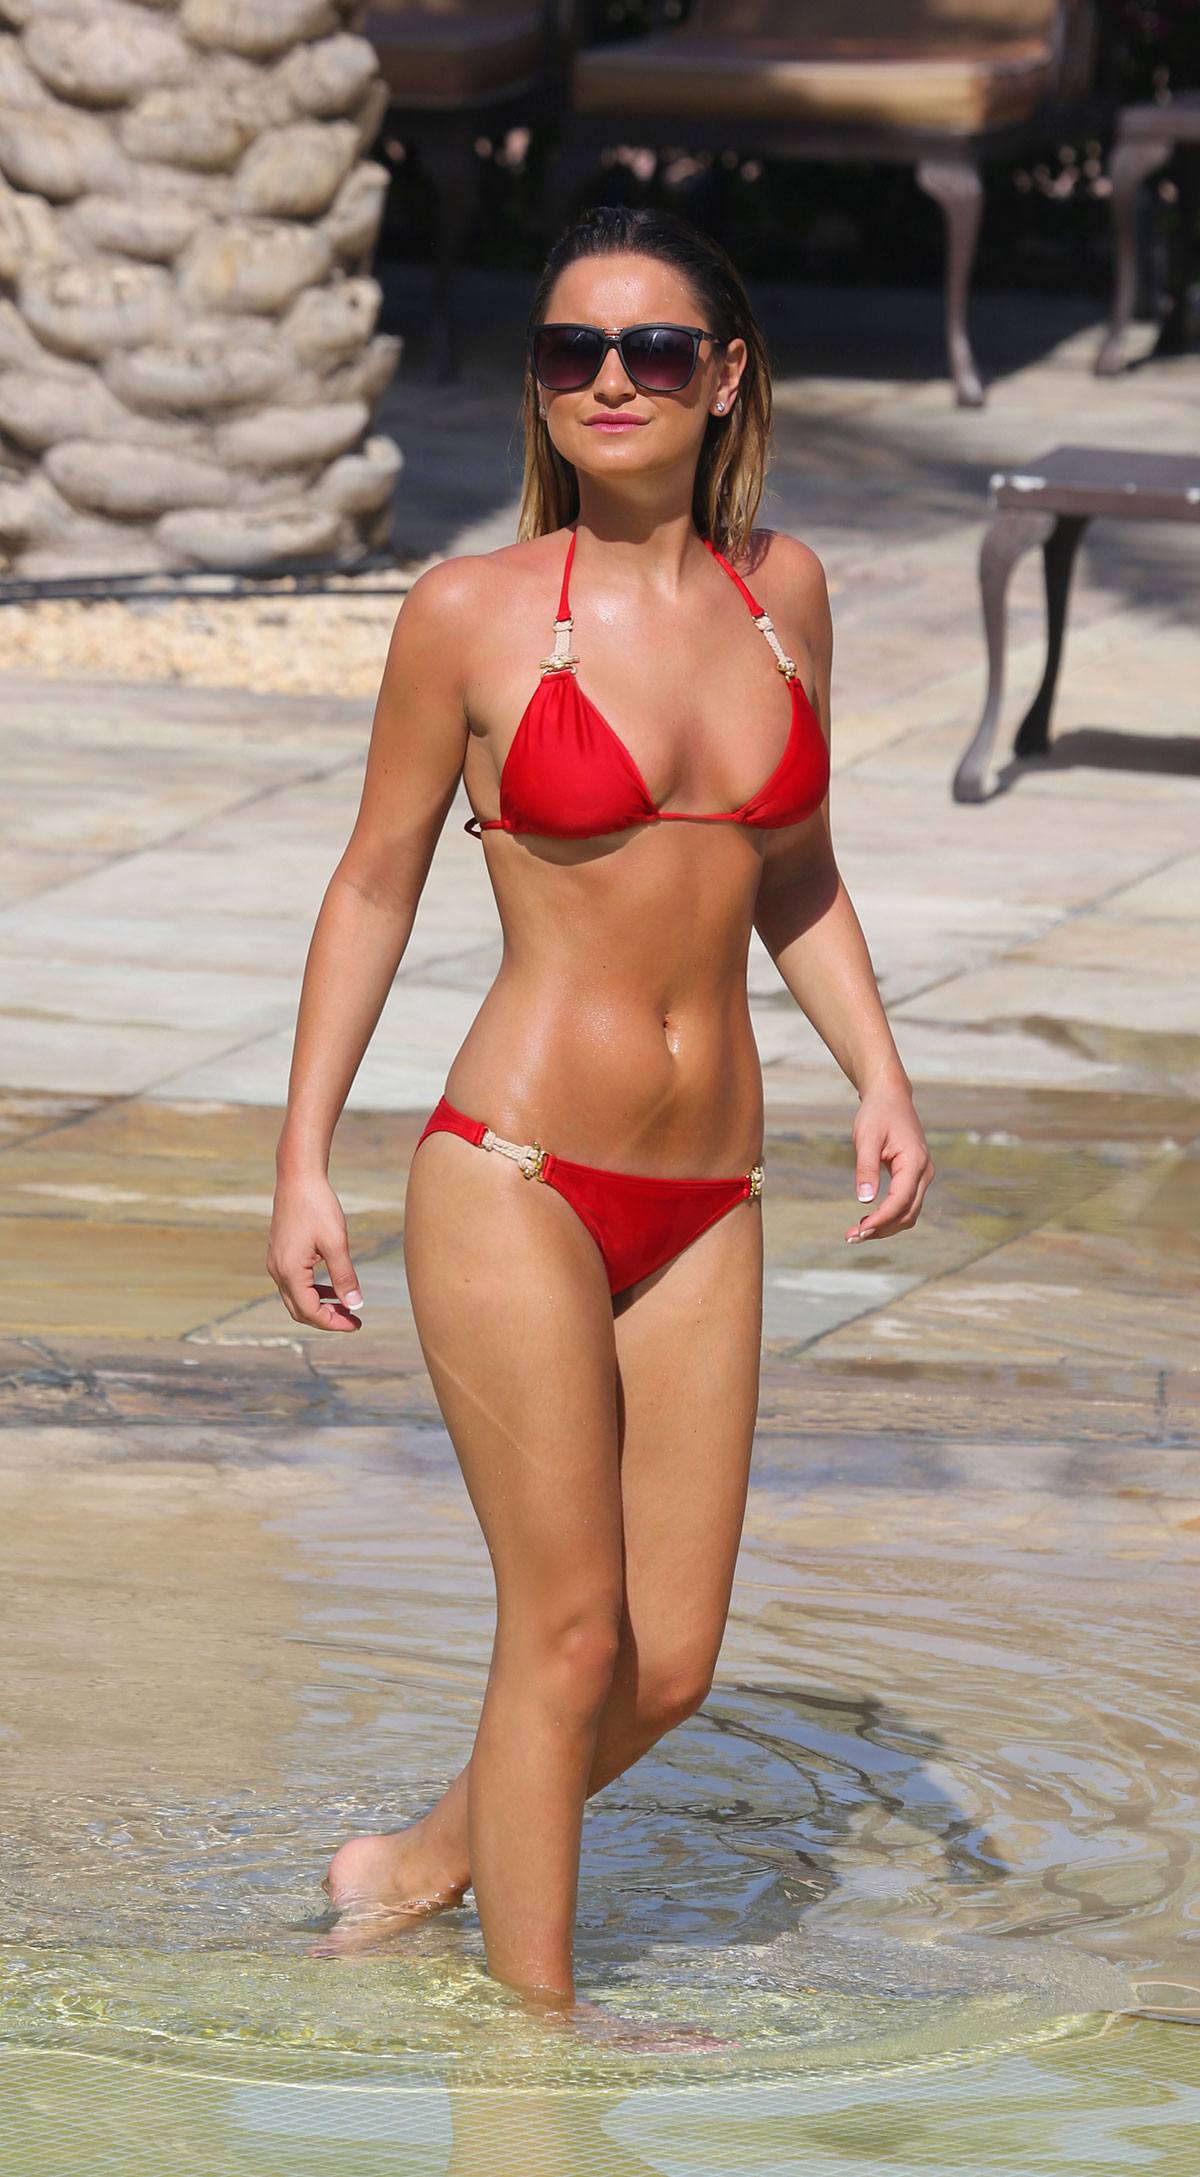 With her slim body and Regular blond hairtype without bra (cup size 32D) on the beach in bikini